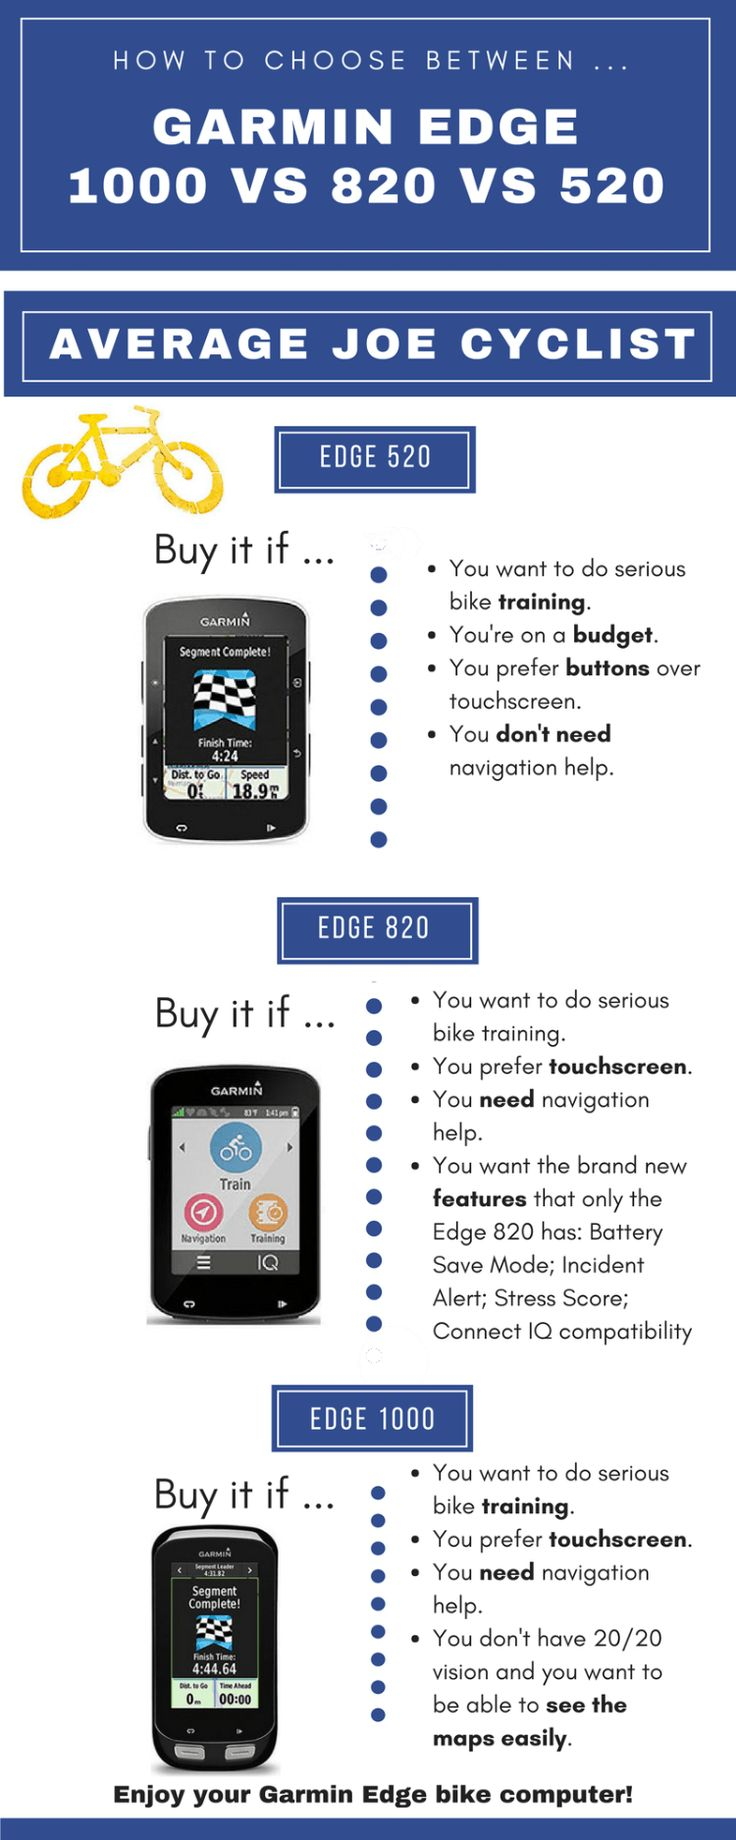 Garmin Edge 1000 vs 820 vs 520 Bike Computers for #cycling compared! (infographic plus chart plus reviews). Includes a chart that compares every important feature, so you can evaluate which of these 3 #Garmin Edge bike computers best fits your needs. Concludes with a chart that highlights ONLY the differences, so you can see at a glance the important differences between the Garmin Edge 1000, 820 and 520 Bike Computers.